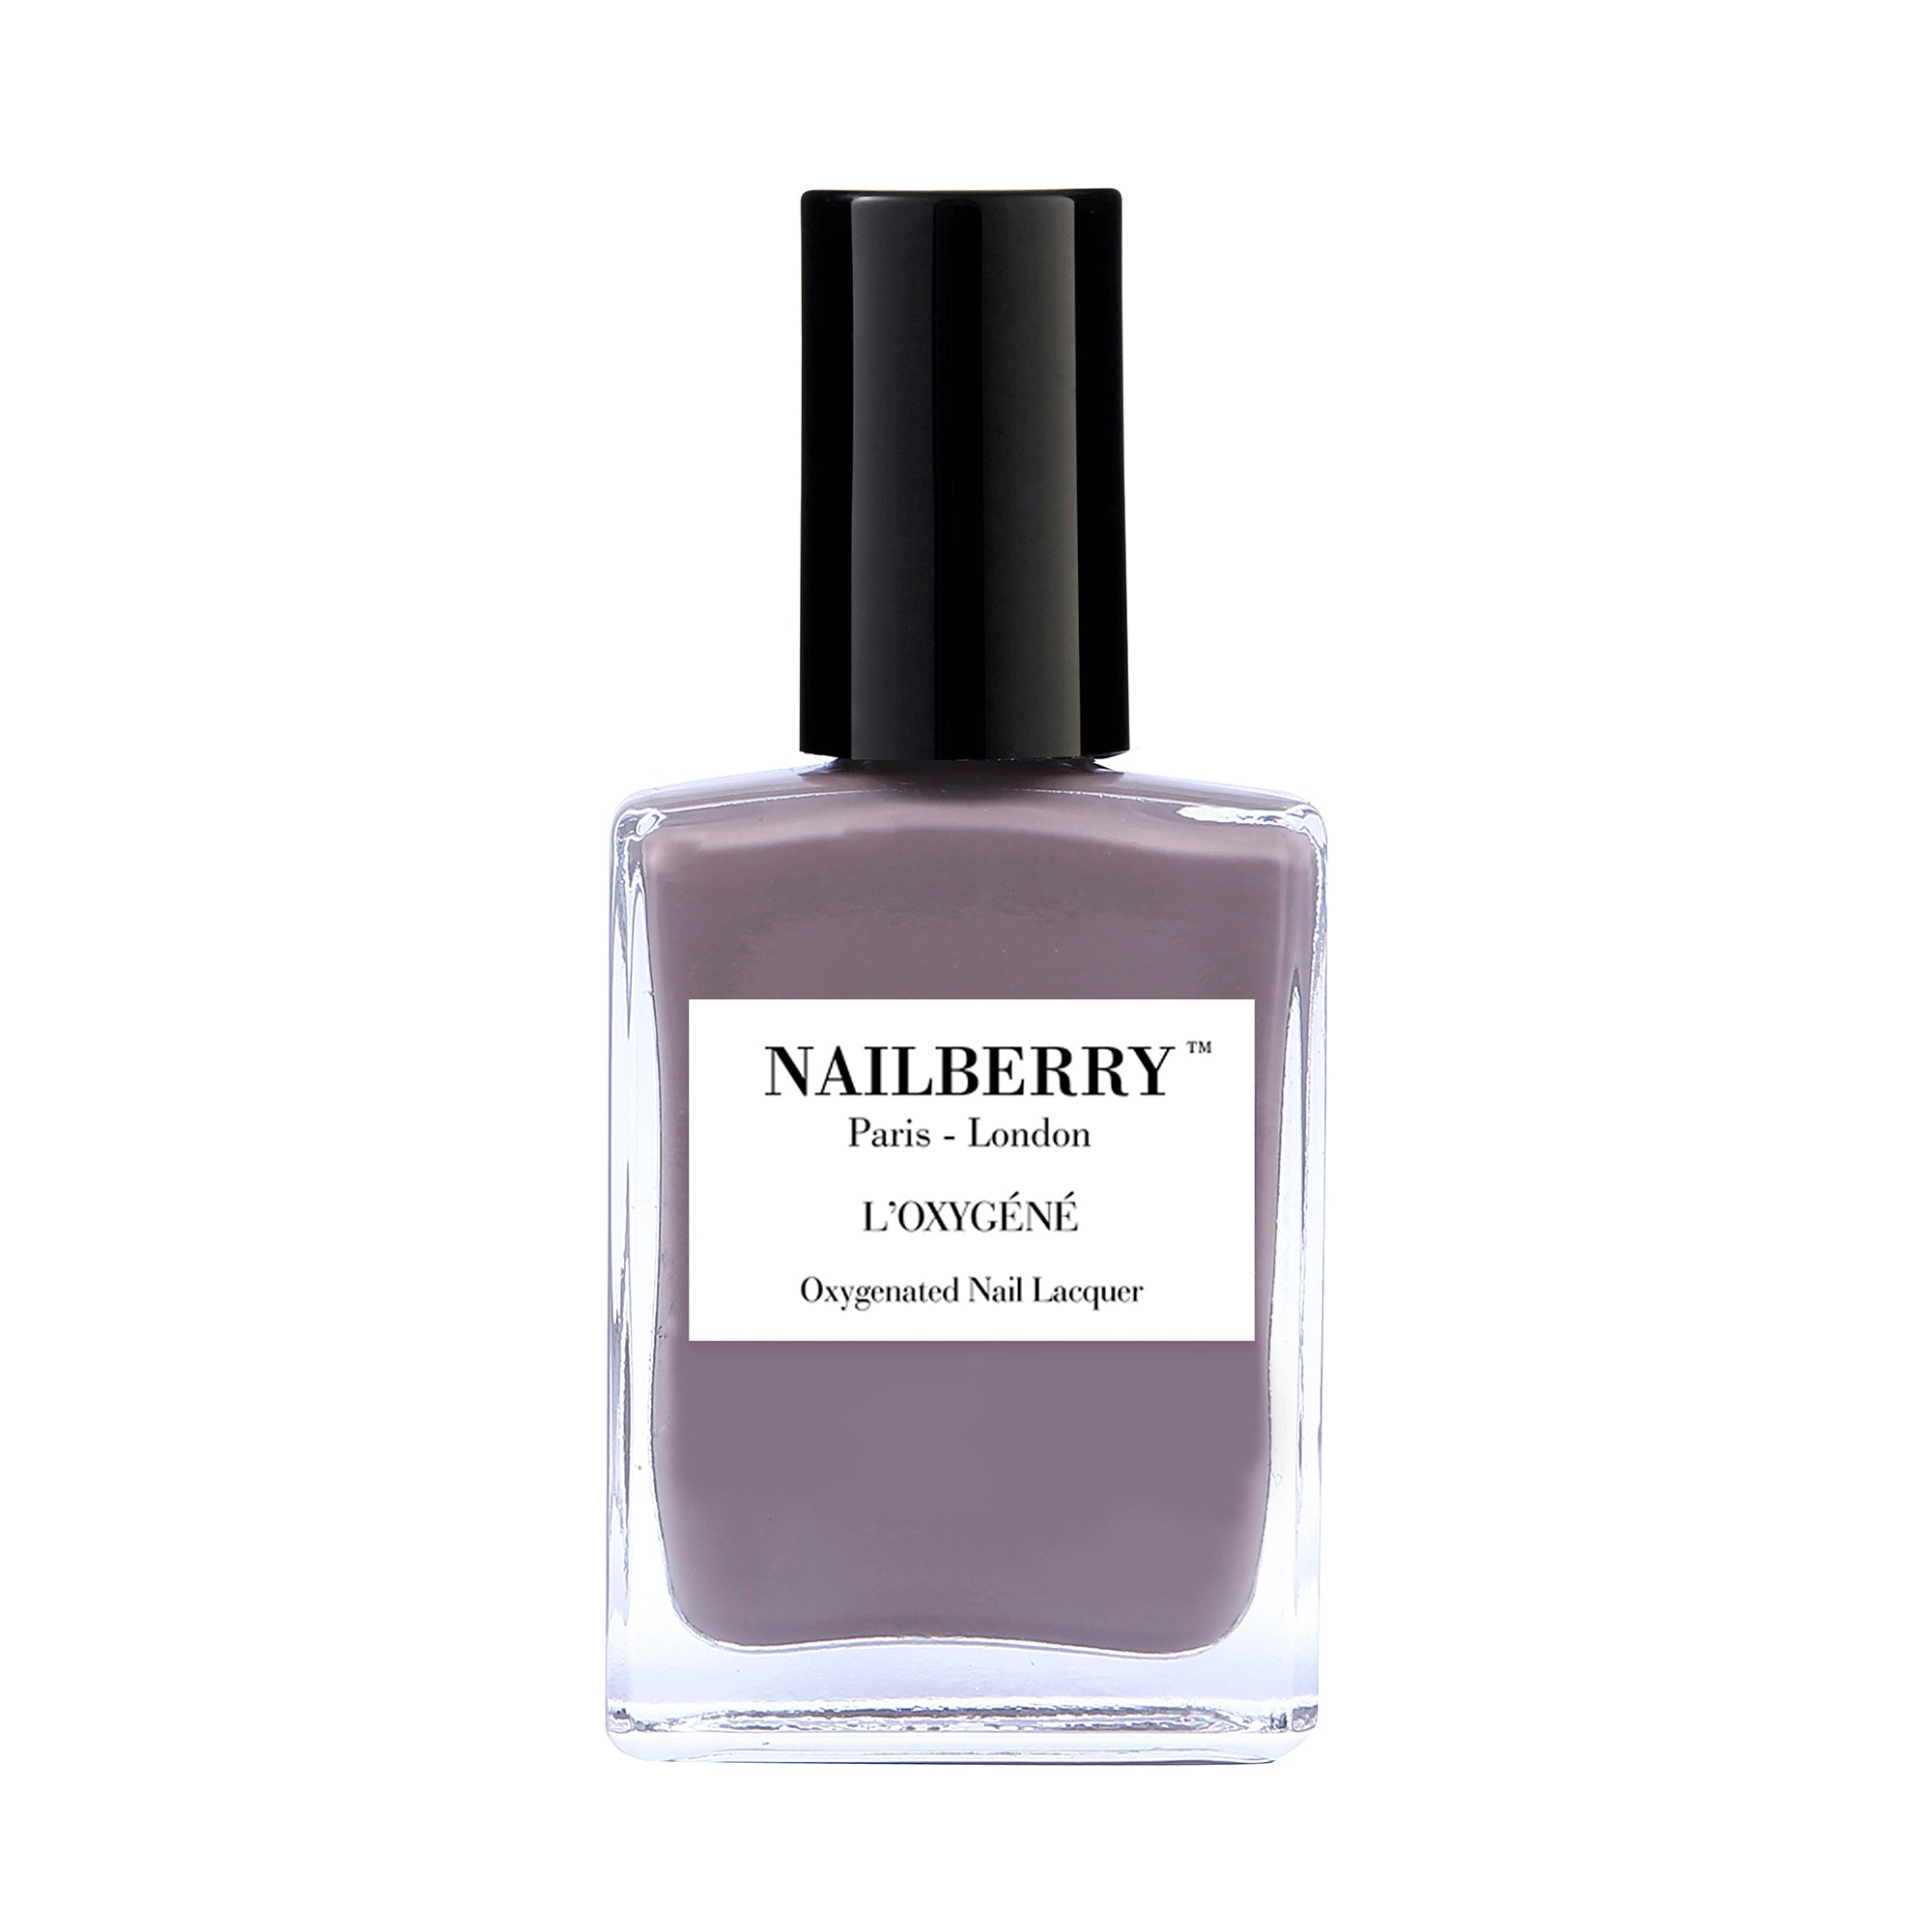 Nailberry Cocoa Cabana